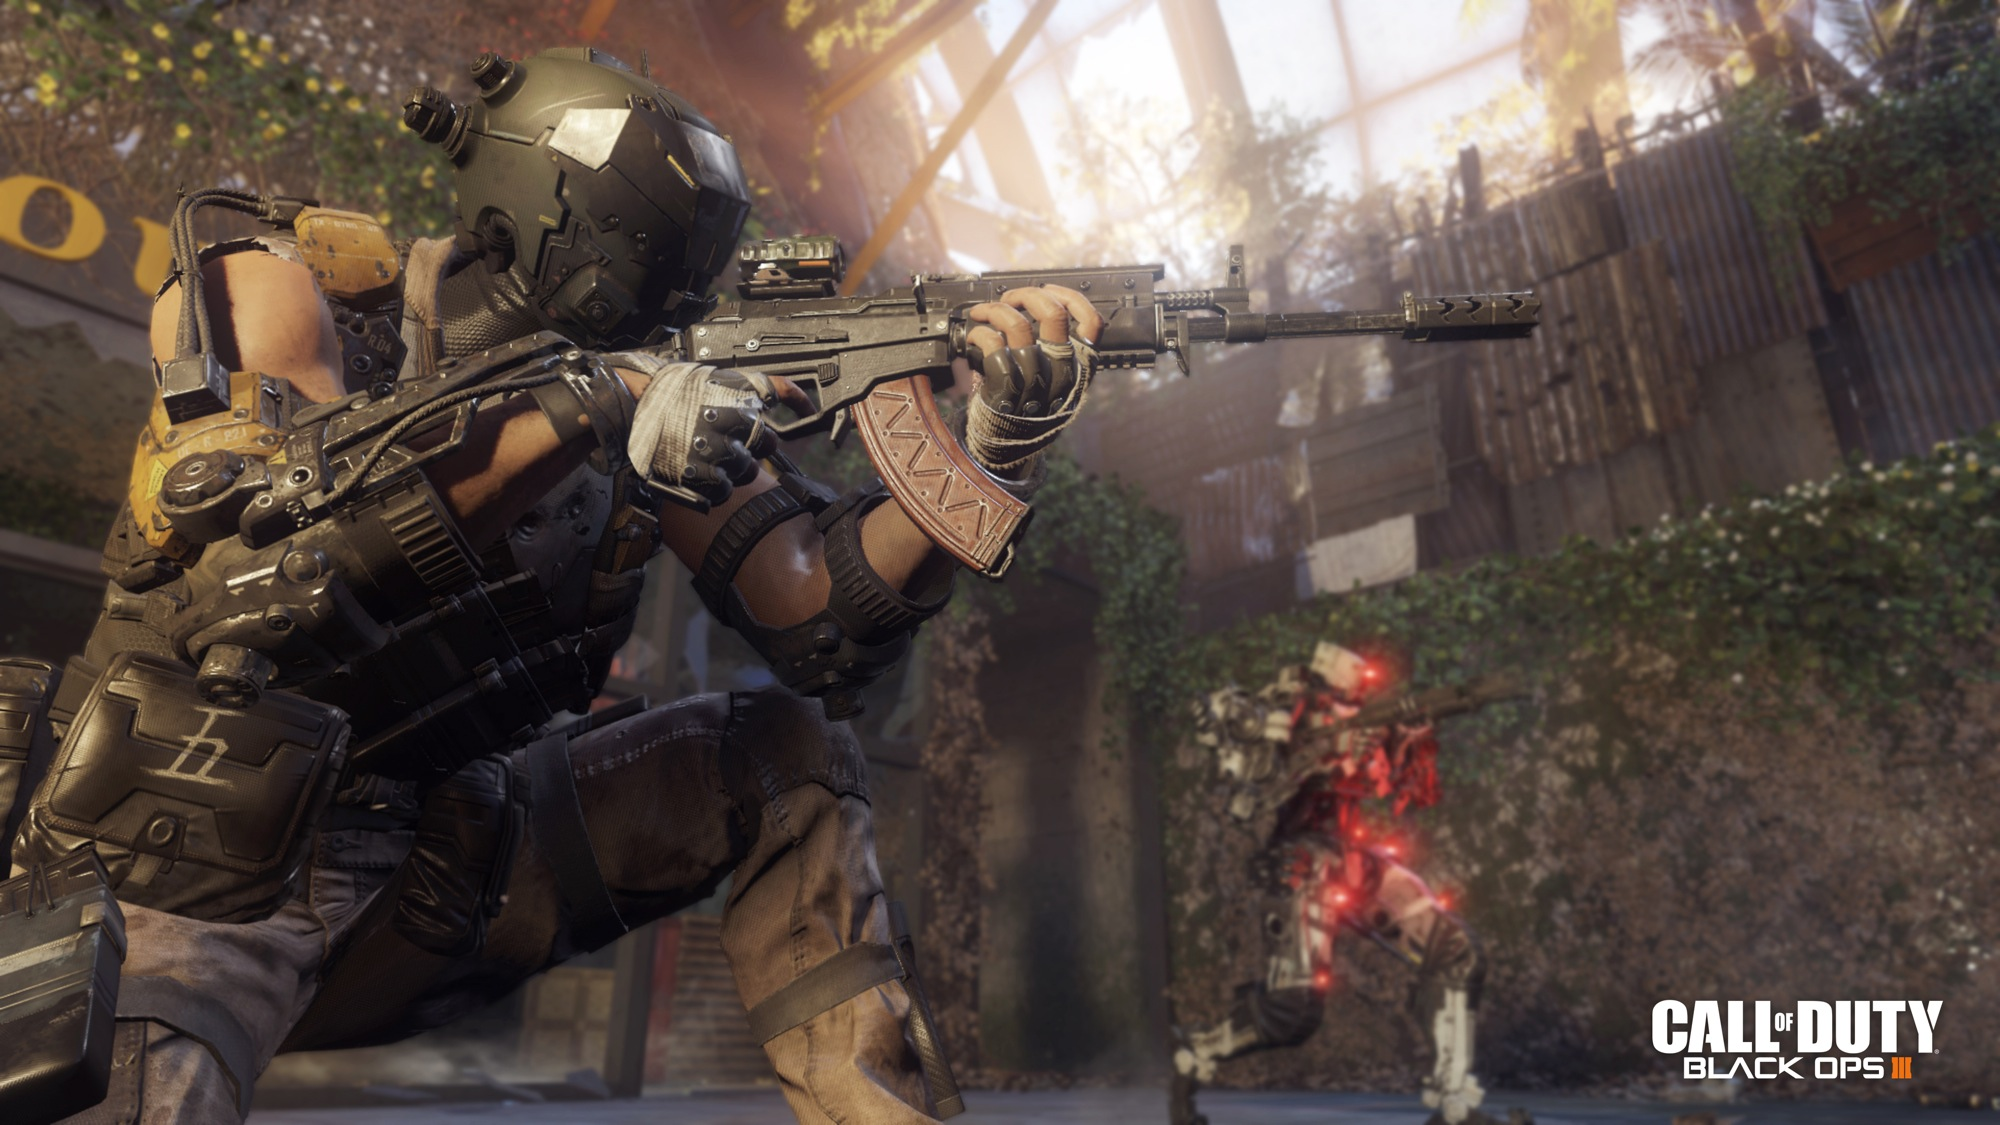 Call of Duty: Black Ops 3 Download Size Revealed on Xbox